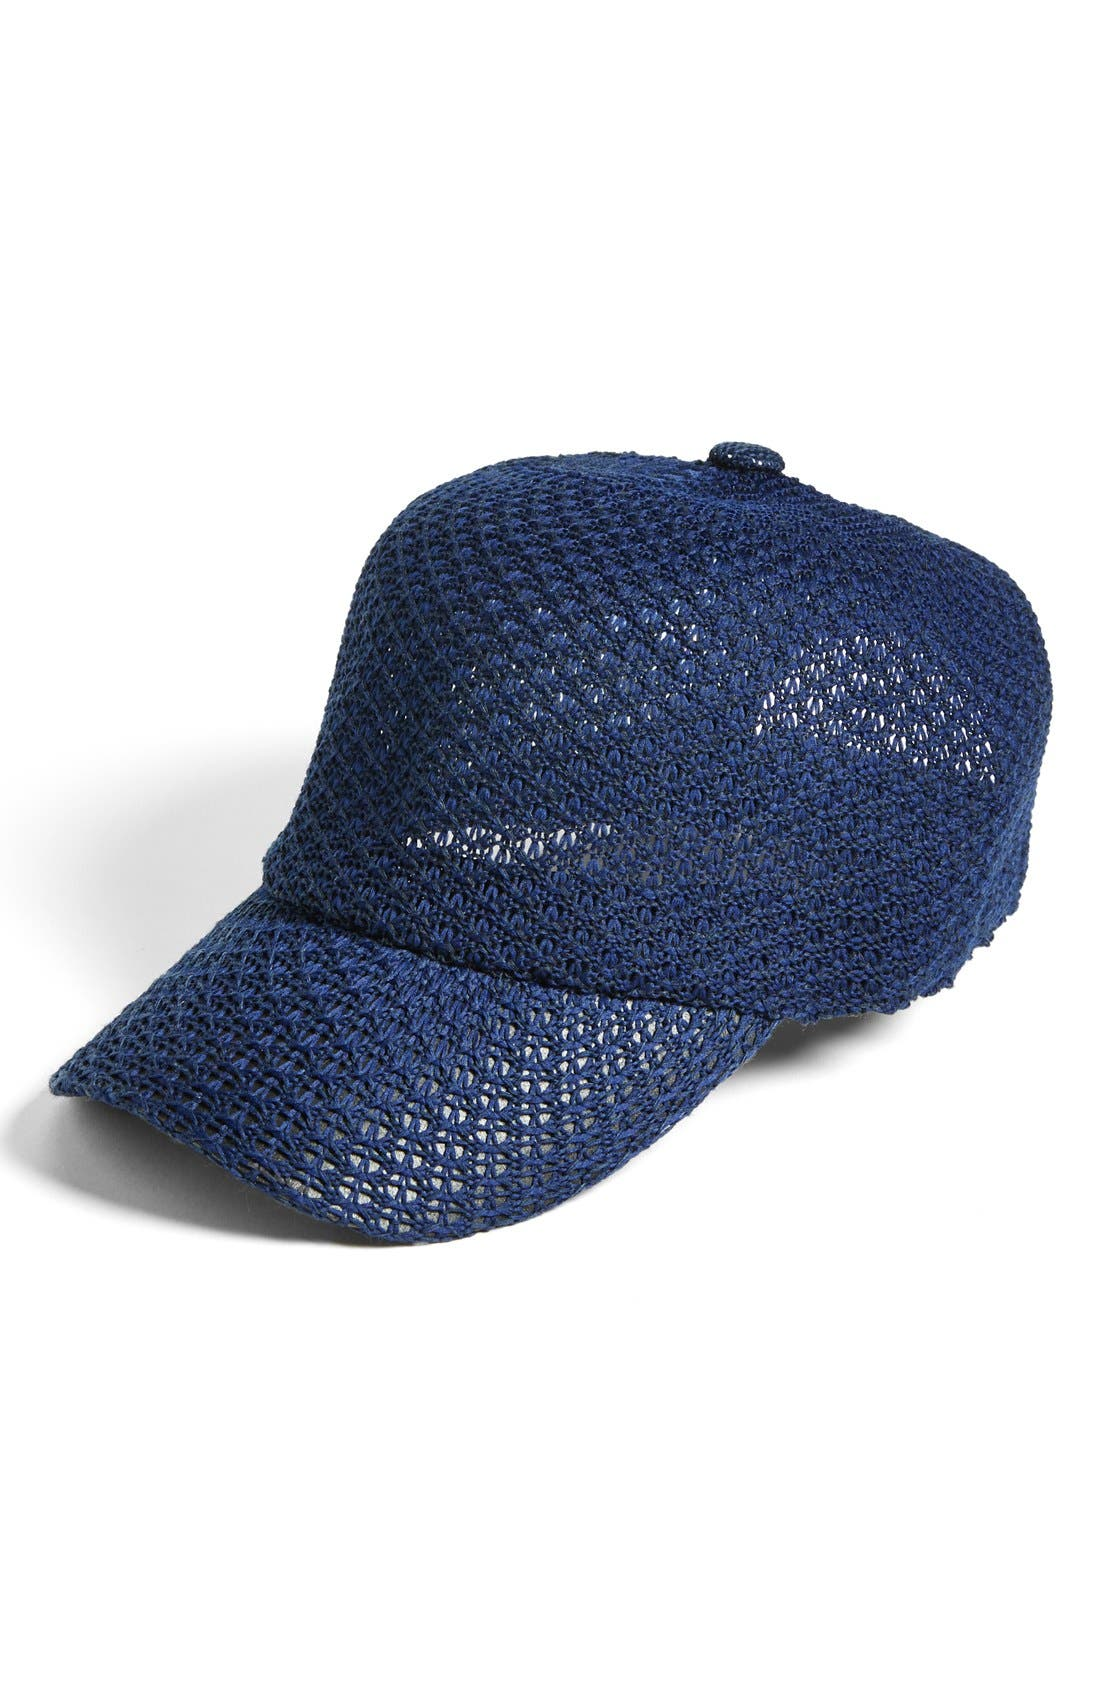 Main Image - Collection XIIX 'Color Expansion' Baseball Cap